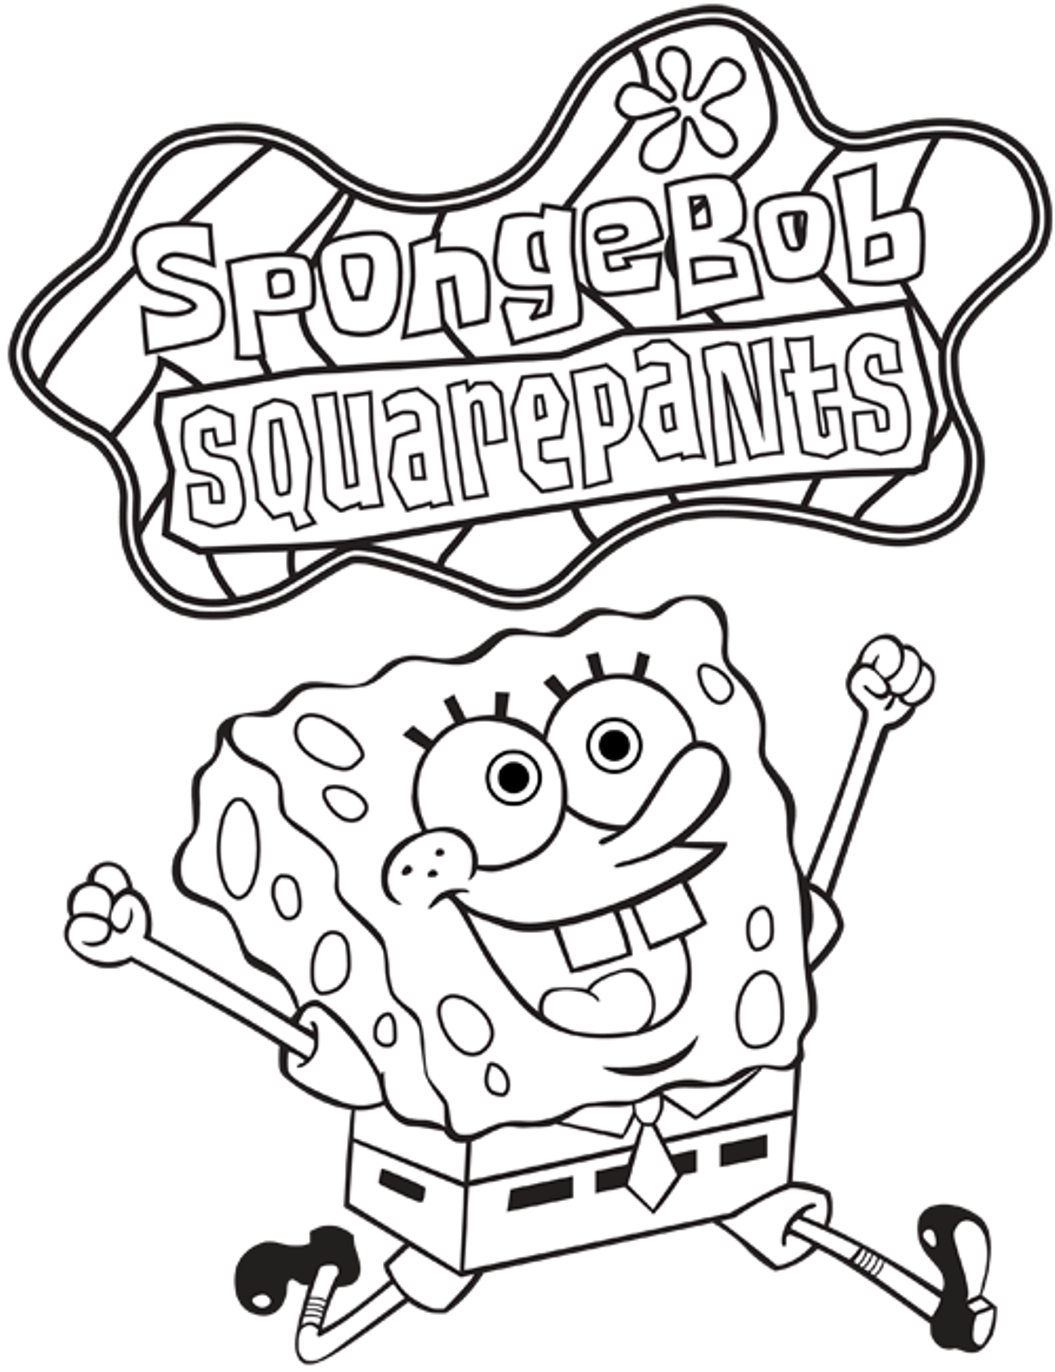 Coloring Rocks Spongebob Coloring Halloween Coloring Pages Printable Coloring Books